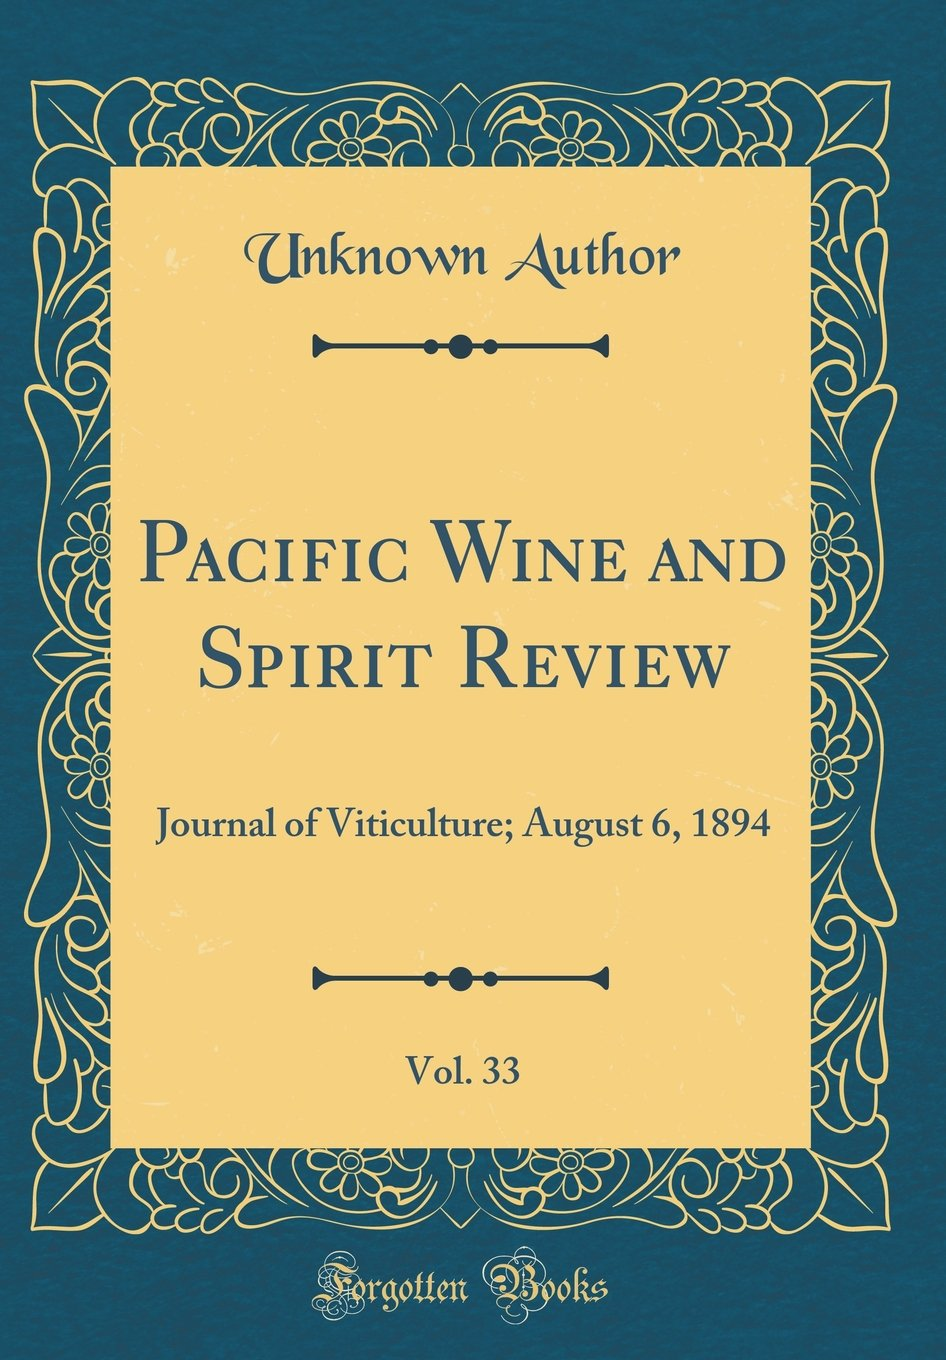 Pacific Wine and Spirit Review, Vol. 33: Journal of Viticulture; August 6, 1894 (Classic Reprint) pdf